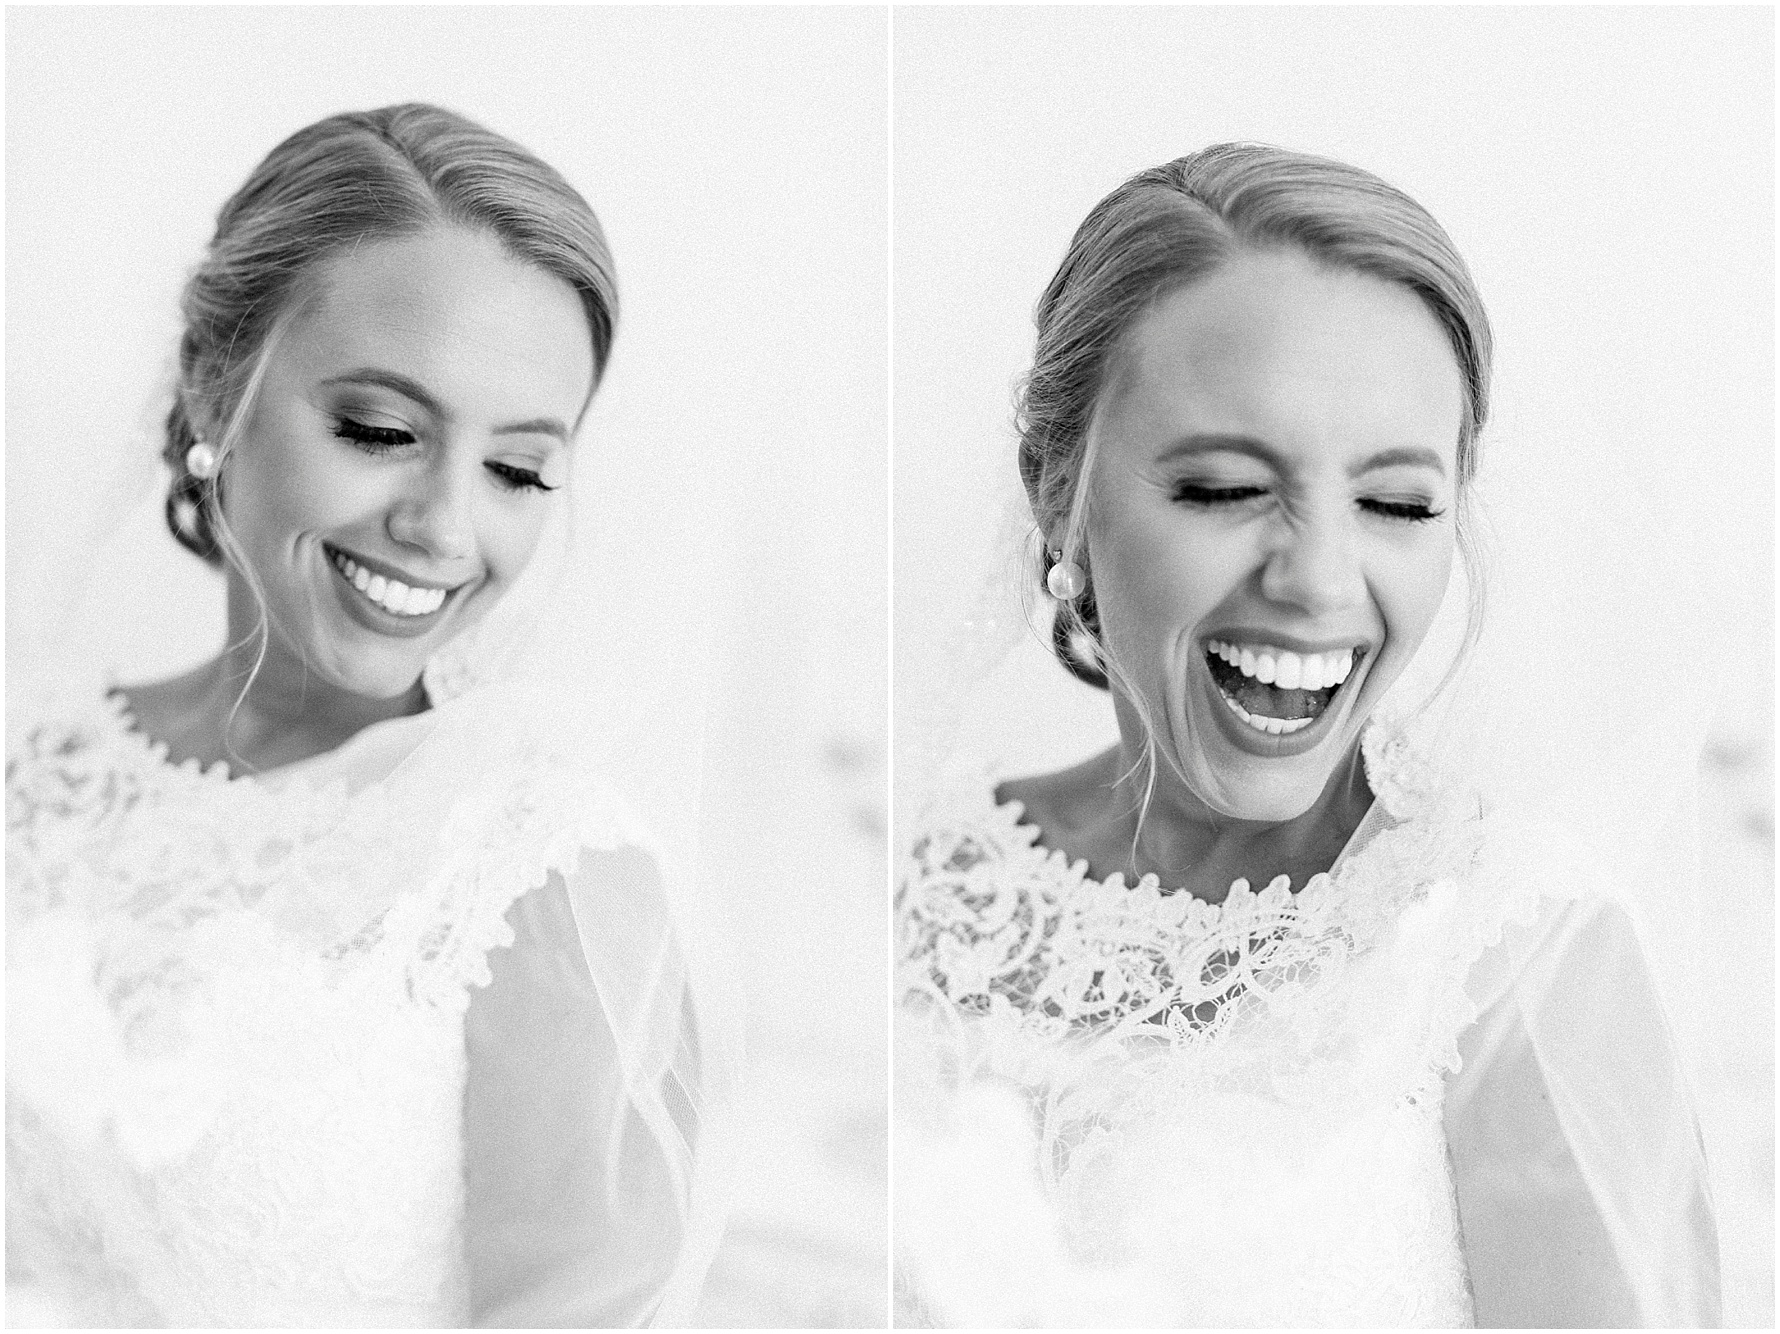 studio at wharf hill bridal portrait, Jessica Ryan photography, candid bridal photography